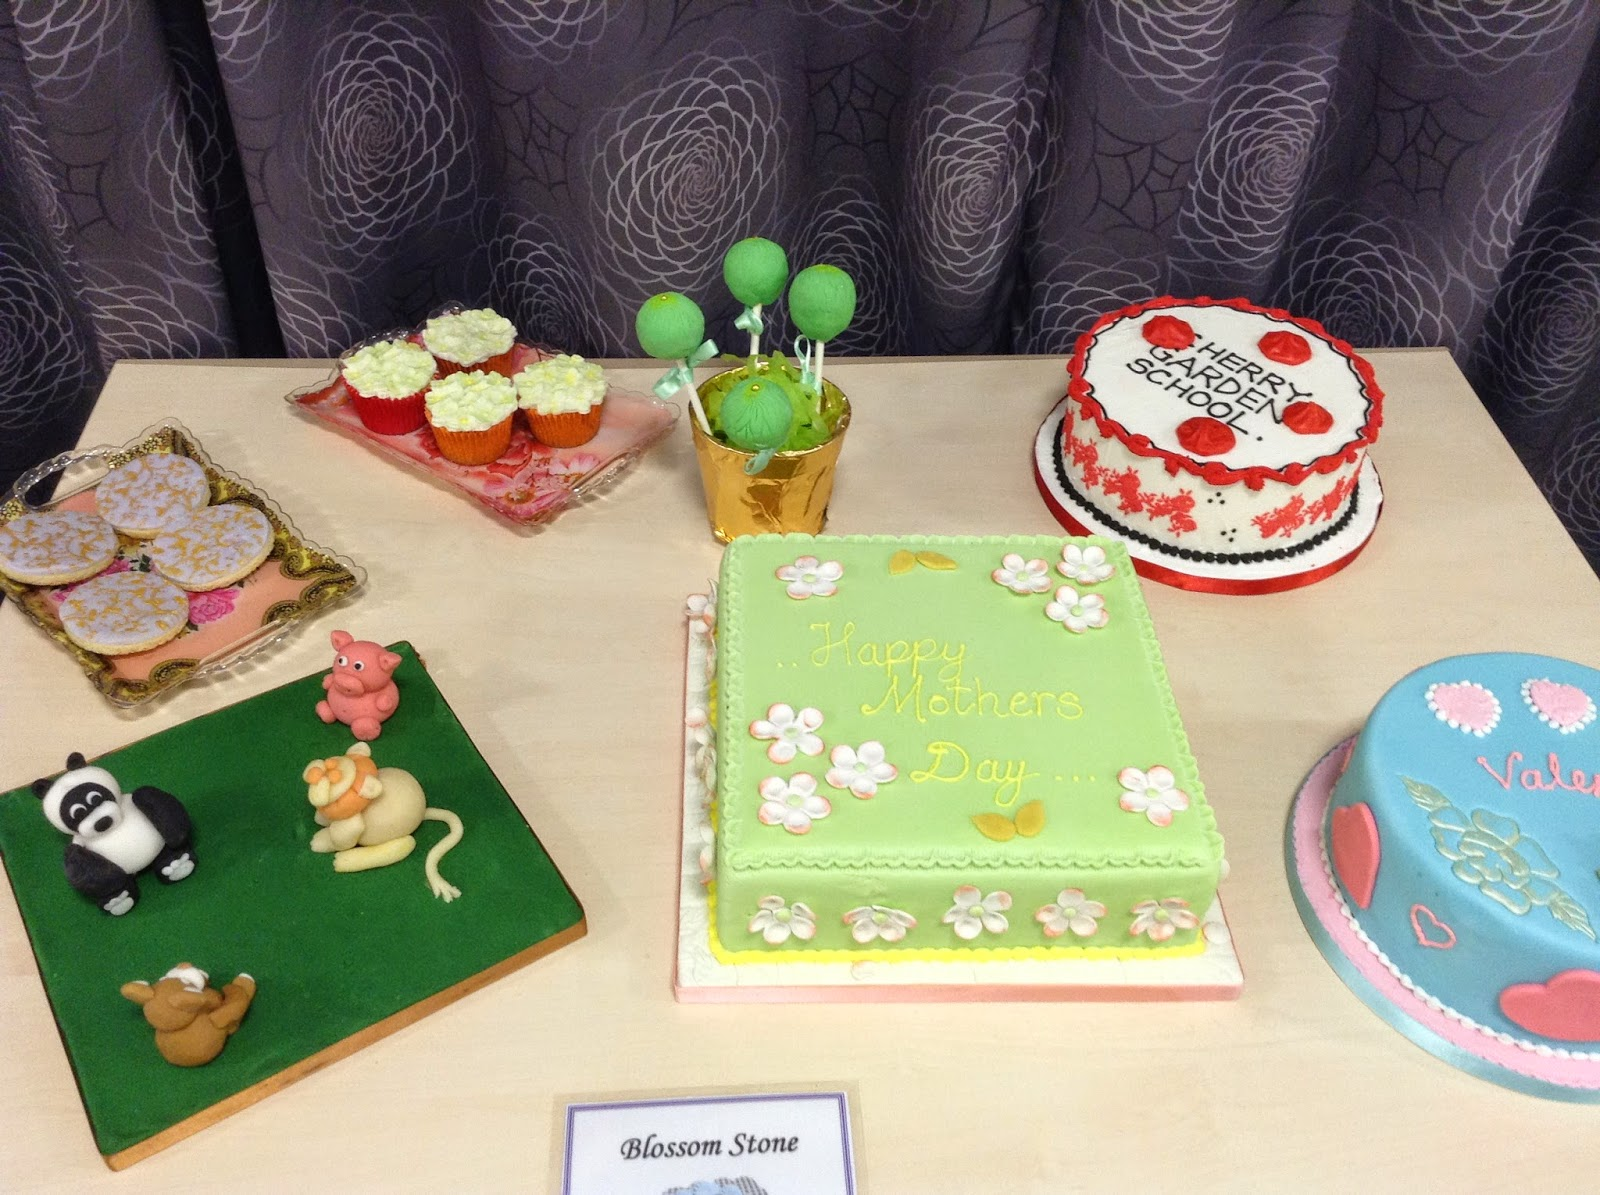 A 100 Pass Rate For Calat Students On The Abc Awards Level 1 Cake Decorating Course